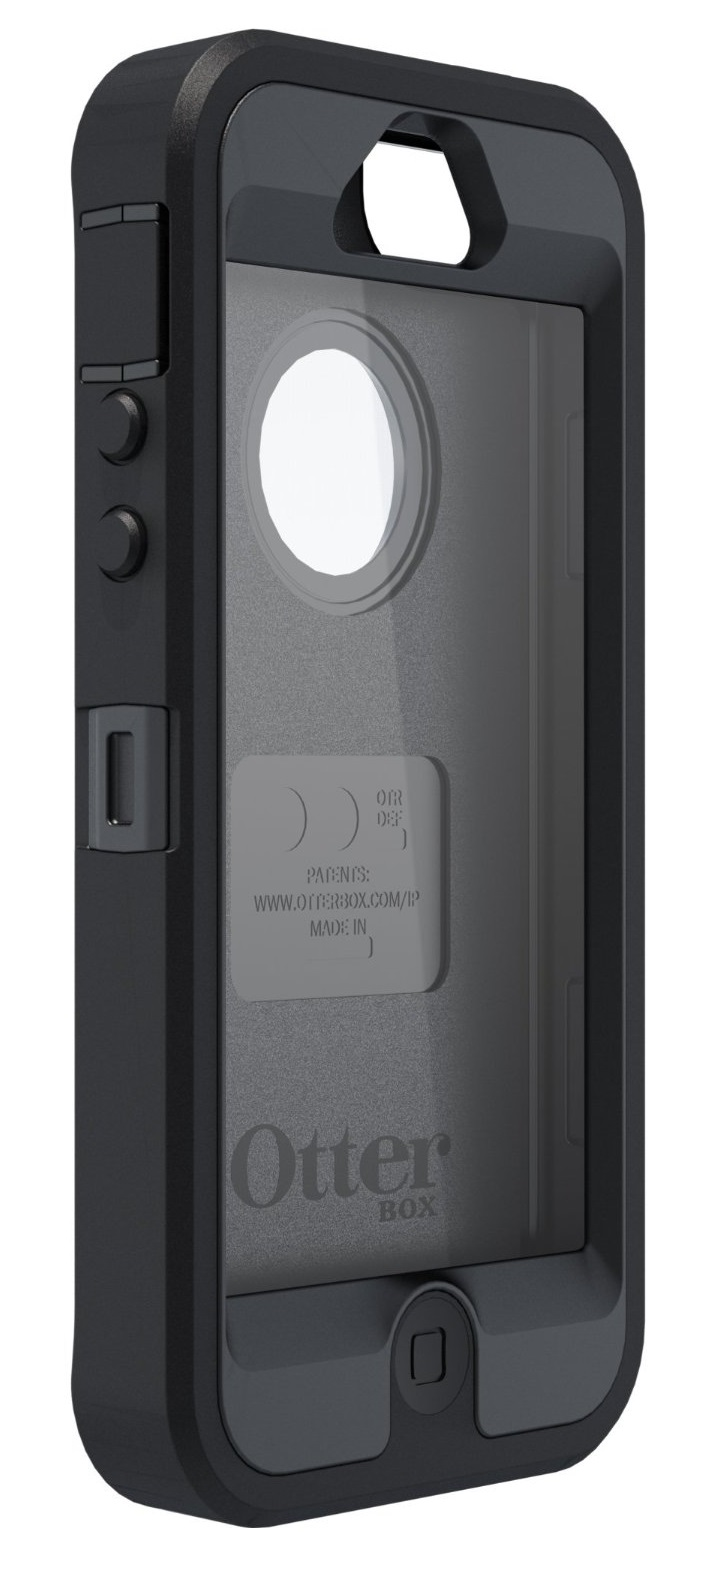 otter box iphone 5 otterbox defender belt holster for apple iphone 5 15793